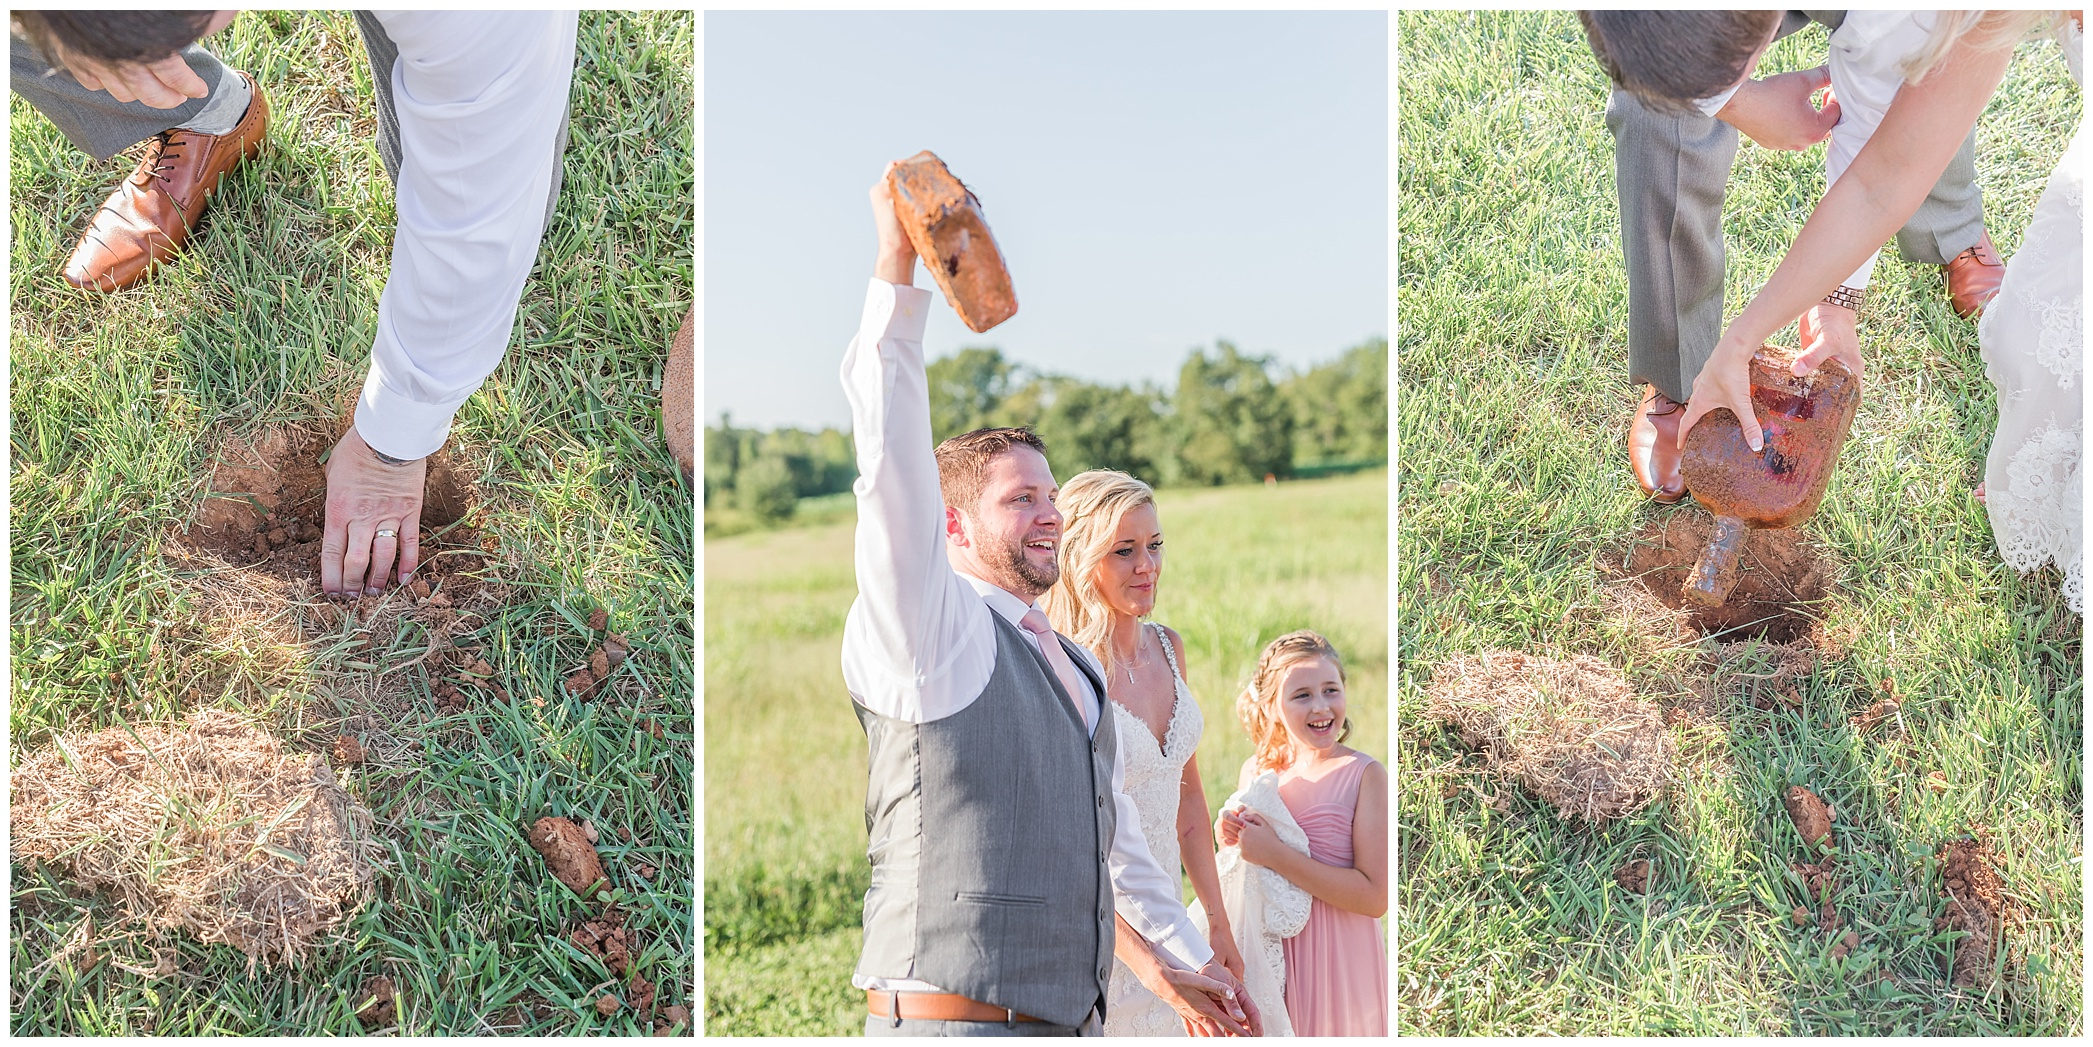 Derek and Kelsey took part of the old tradition of burying the bourbon for your wedding day. It is said if you bury a bottle of bourbon before your wedding day at the venue it will not rain that day. Well it was a GORGEOUS day that is for sure!